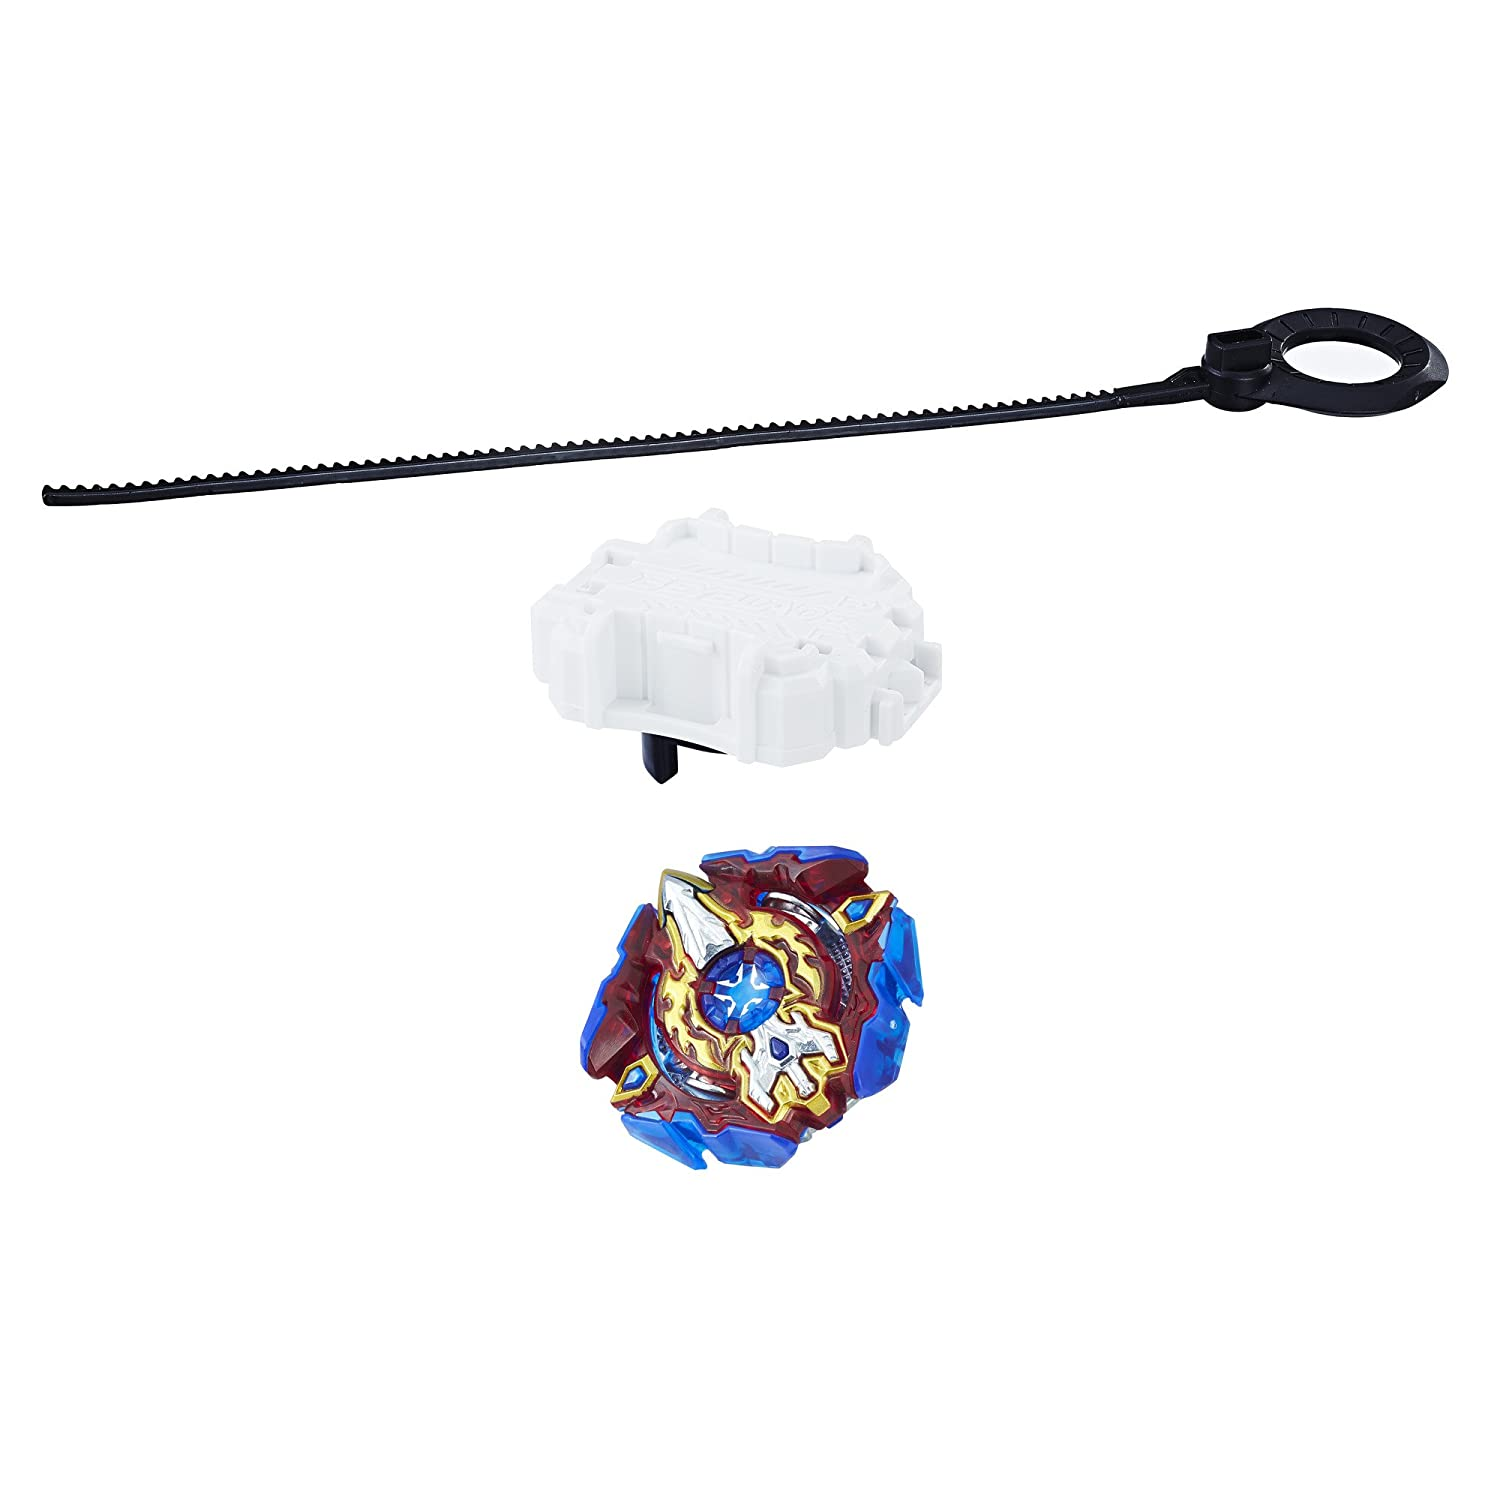 Beyblade Burst Evolution SwitchStrike Starter Pack Xcalius X3 Hasbro Canada Corporation E1035